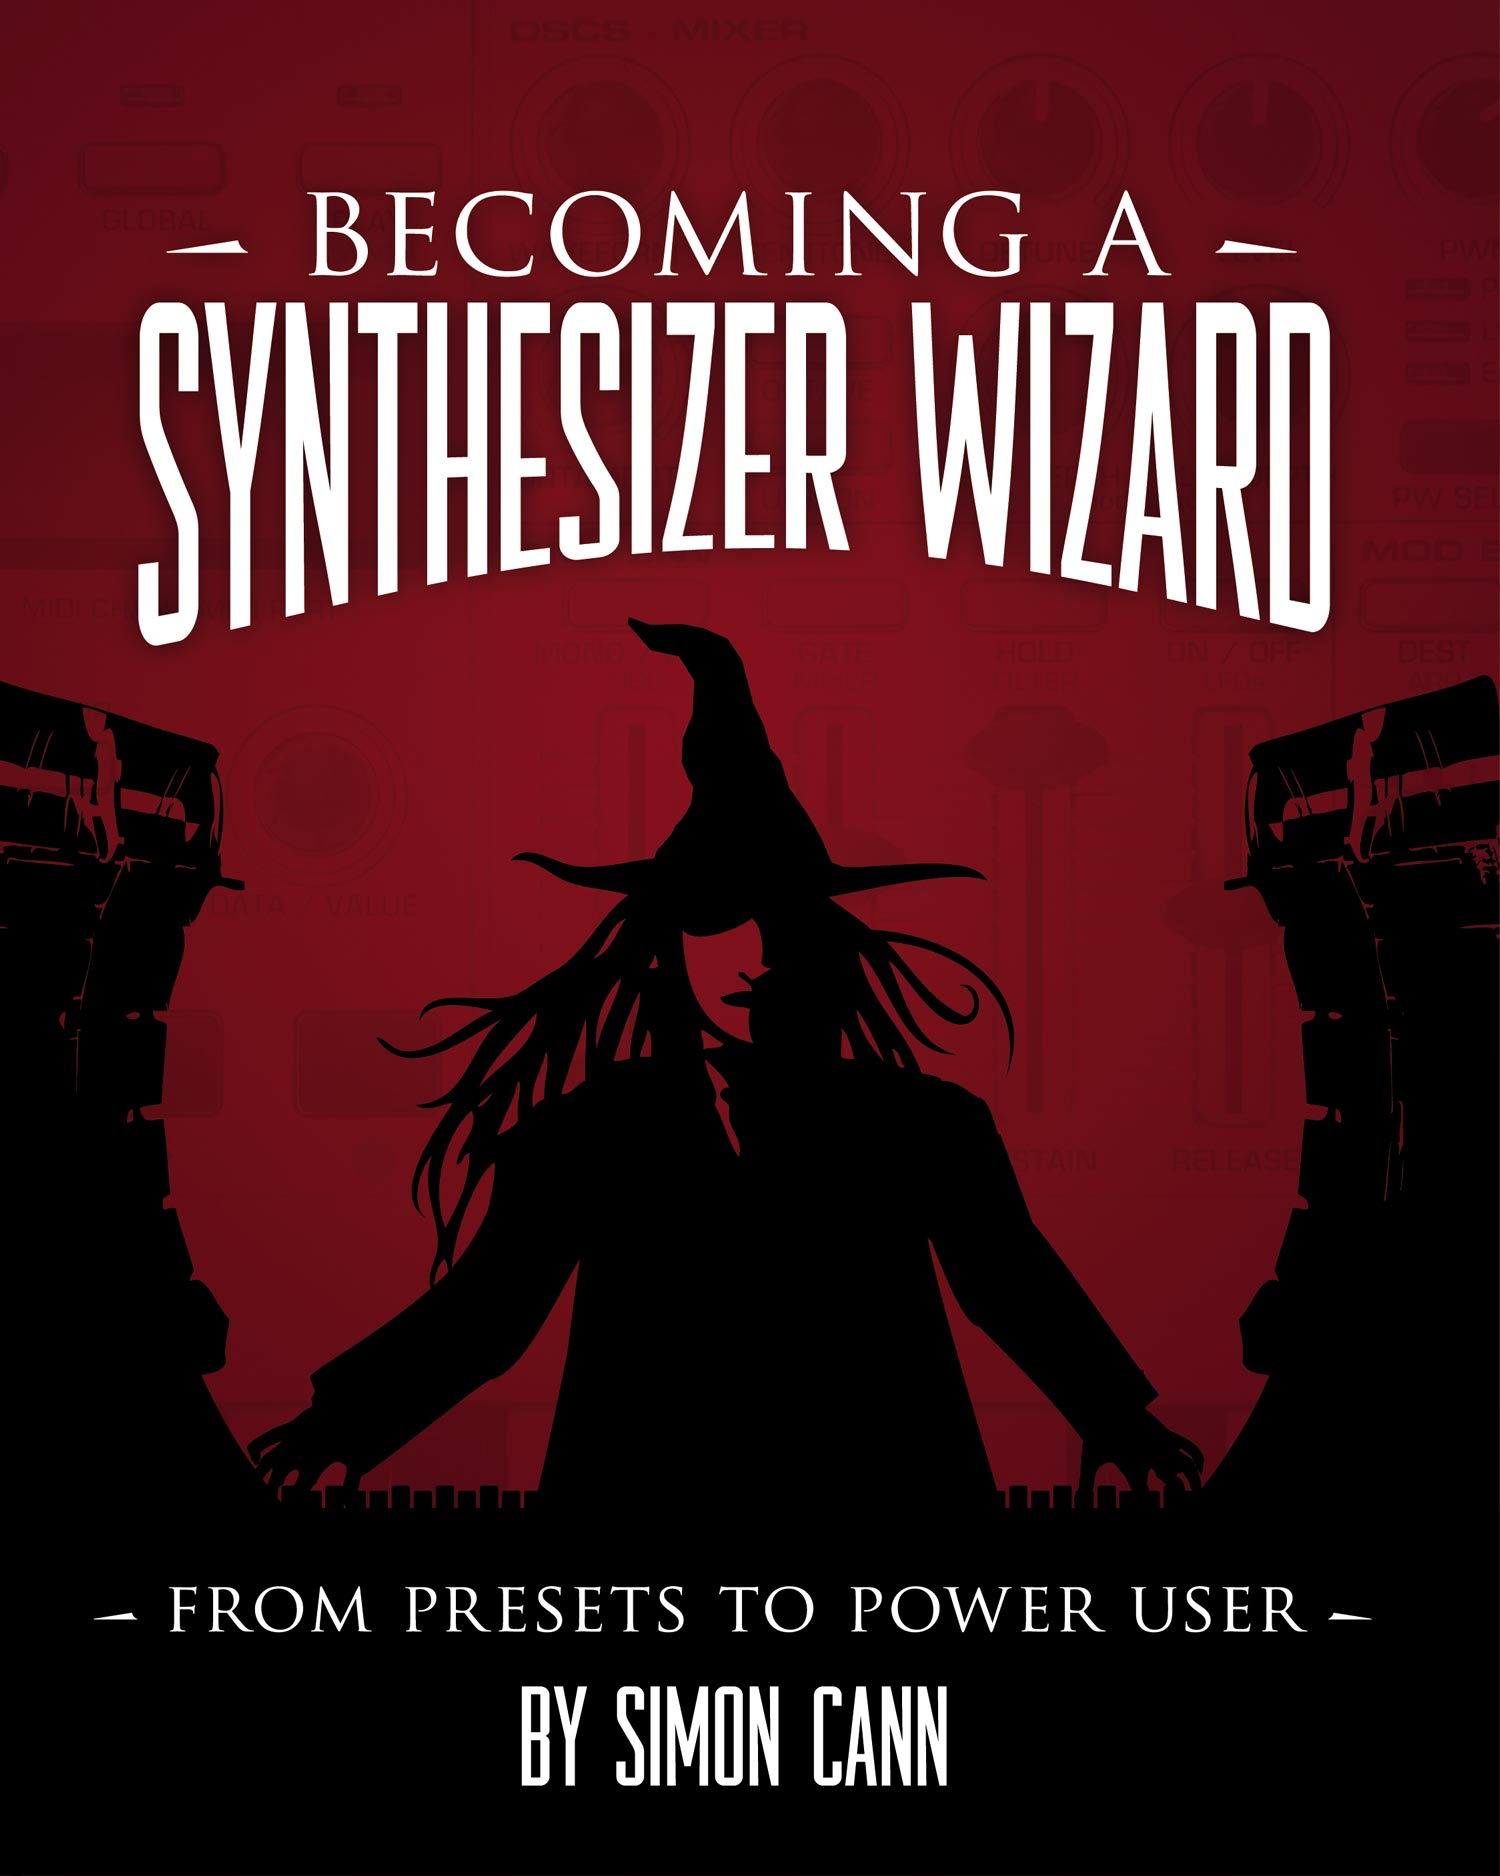 Becoming a Synthesizer Wizard: From Presets to Power User by